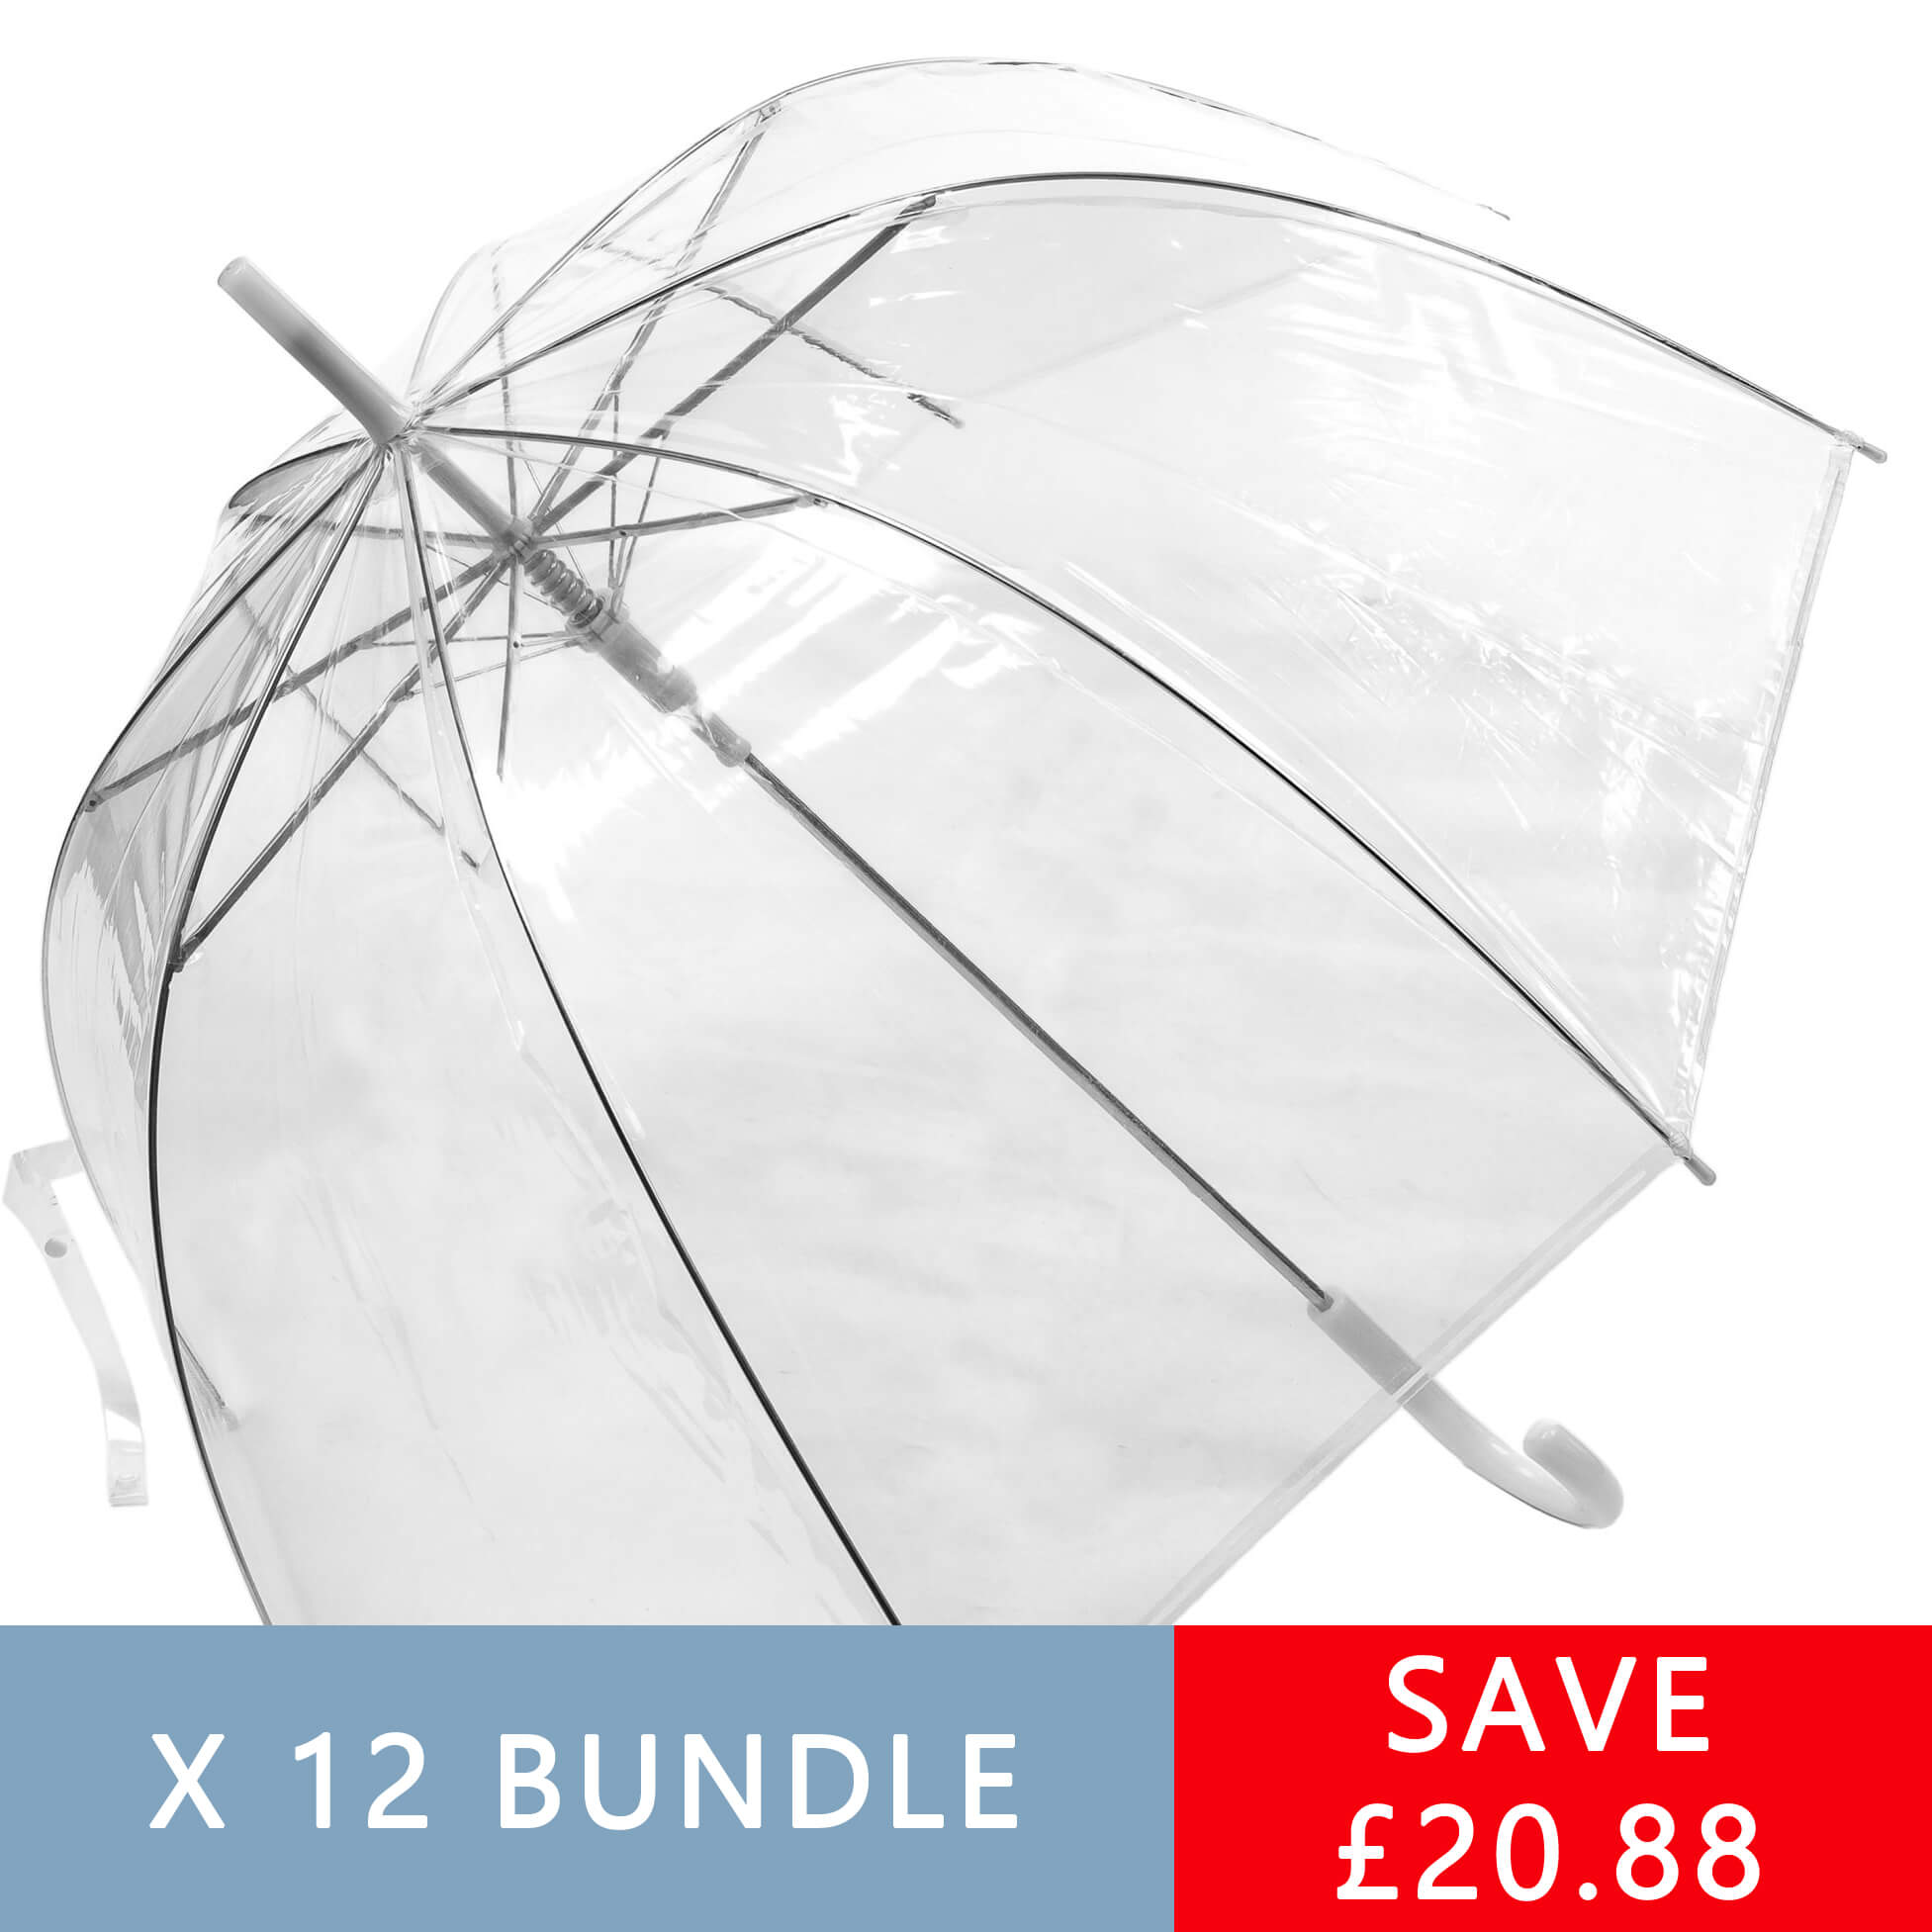 12 Pack of Auto Open Clear Umbrellas (3476-12)